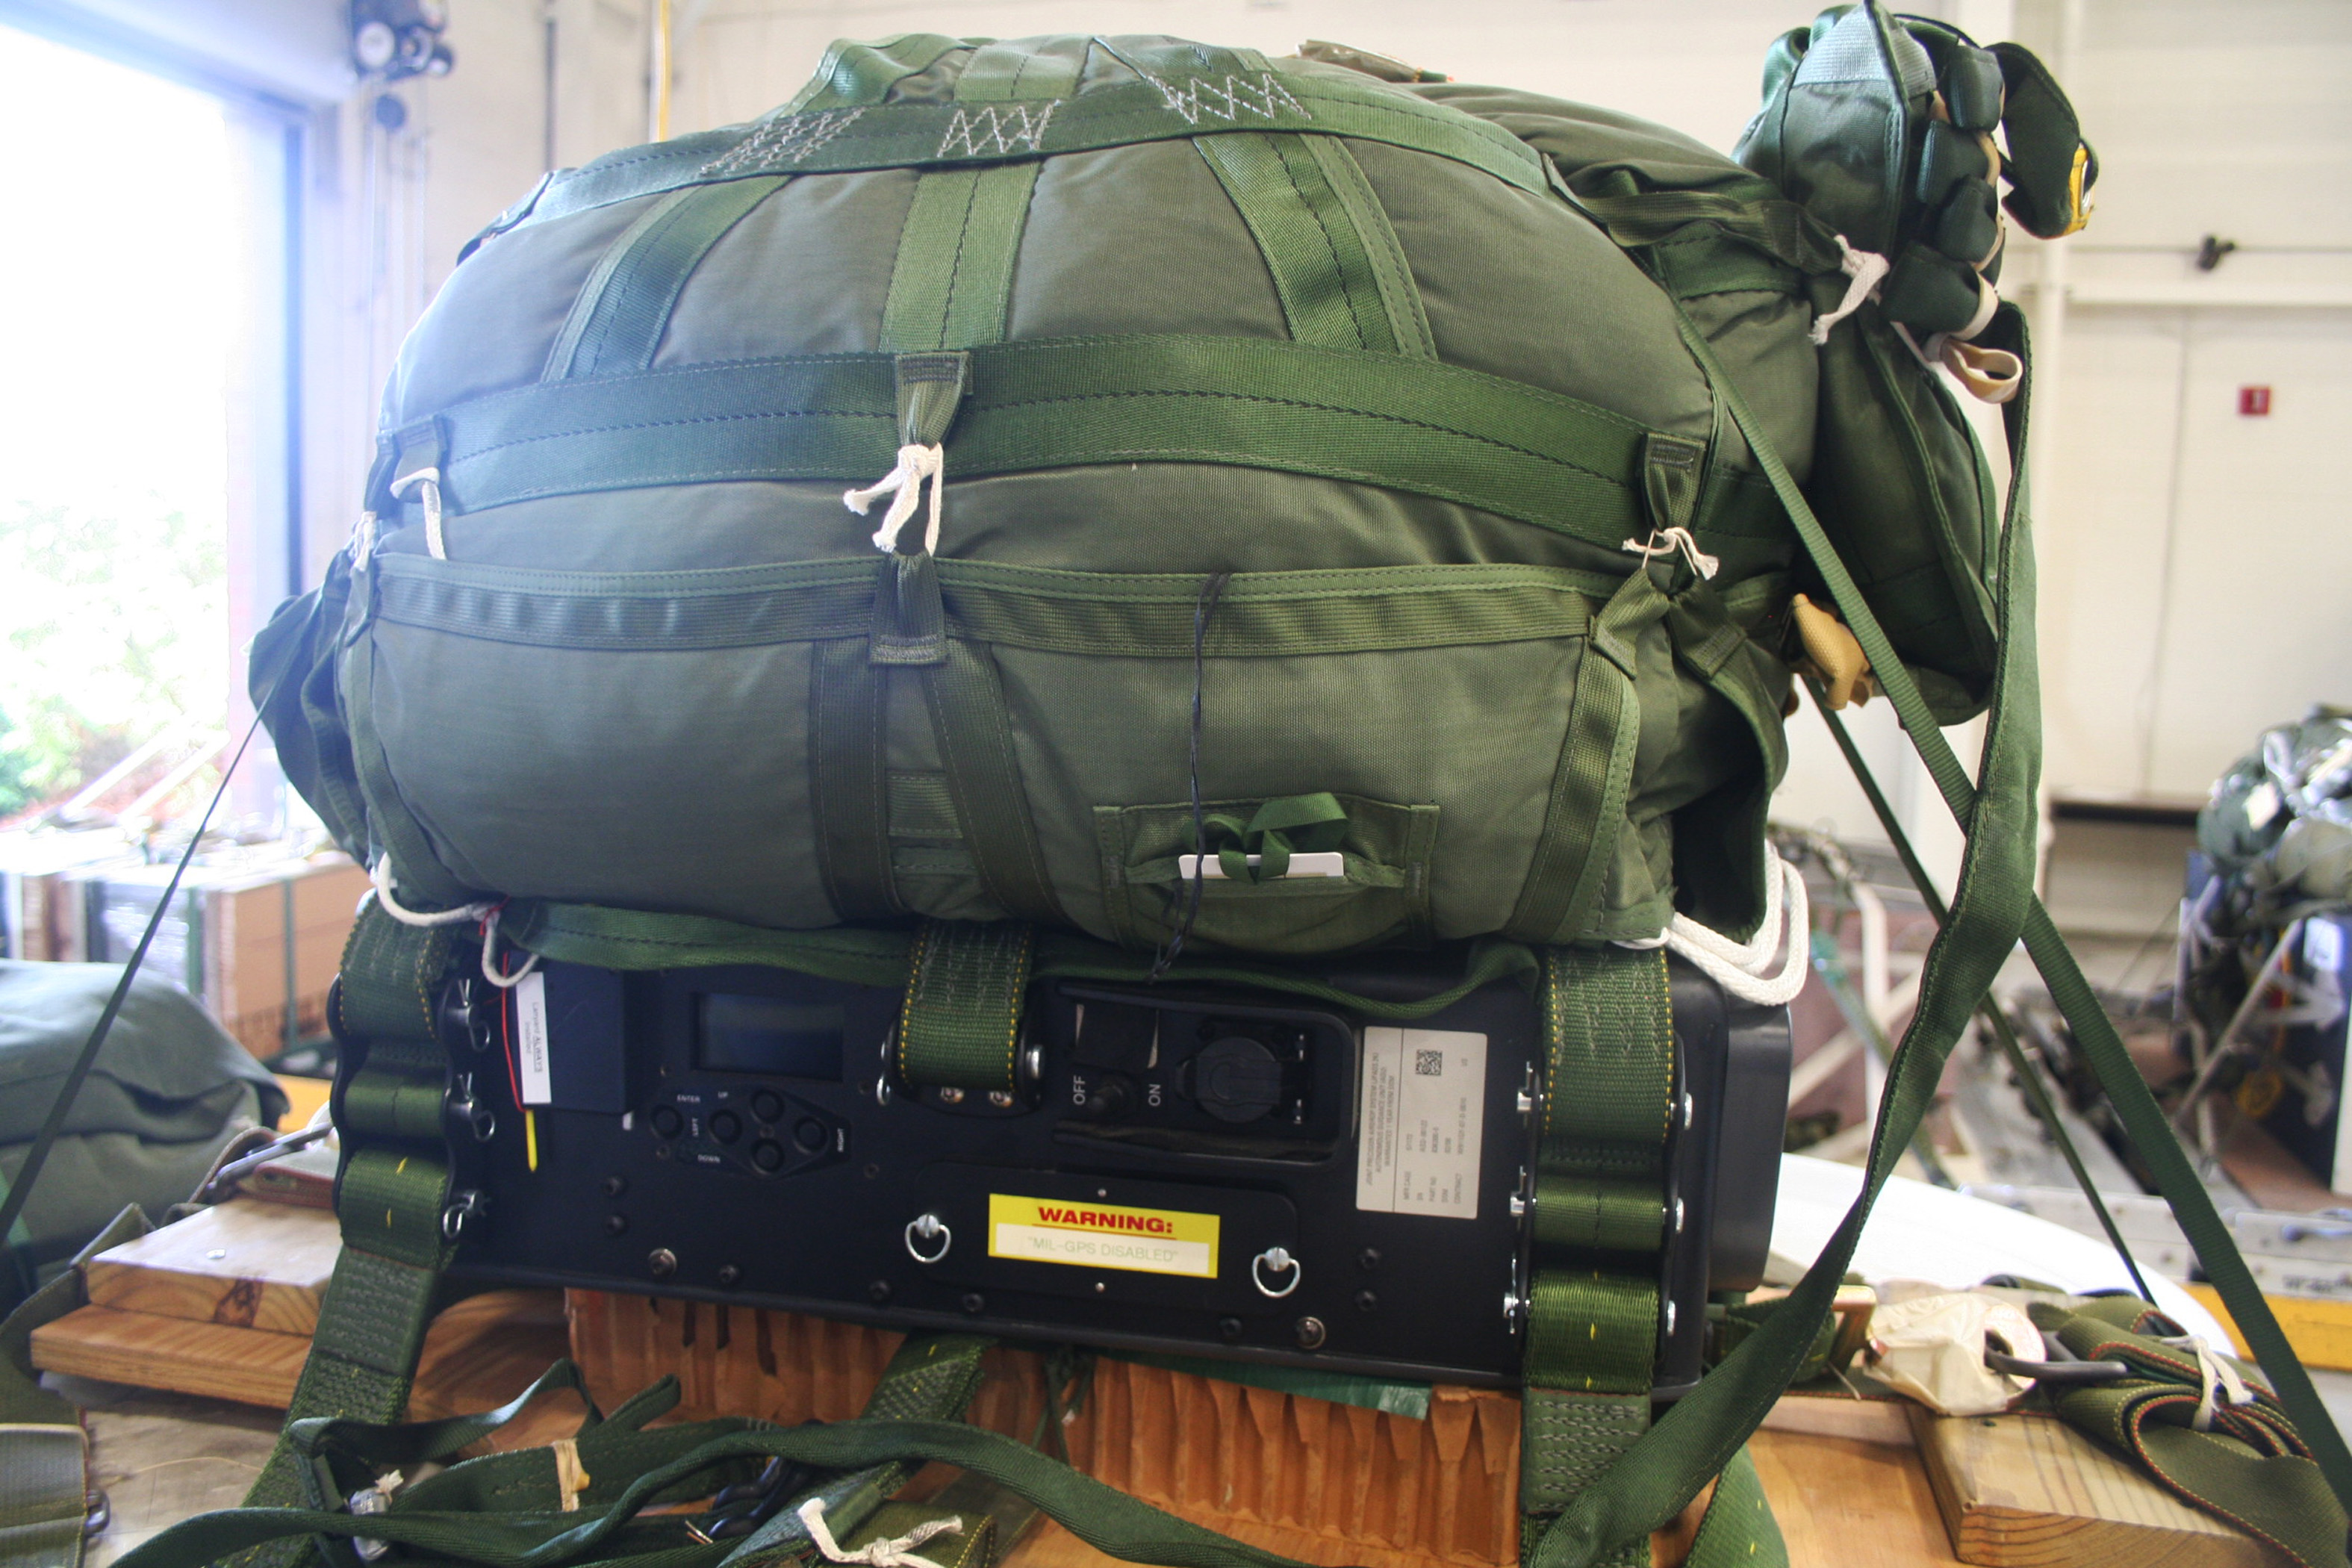 'precision' Airdrop Systems Are Growing For Future Ops